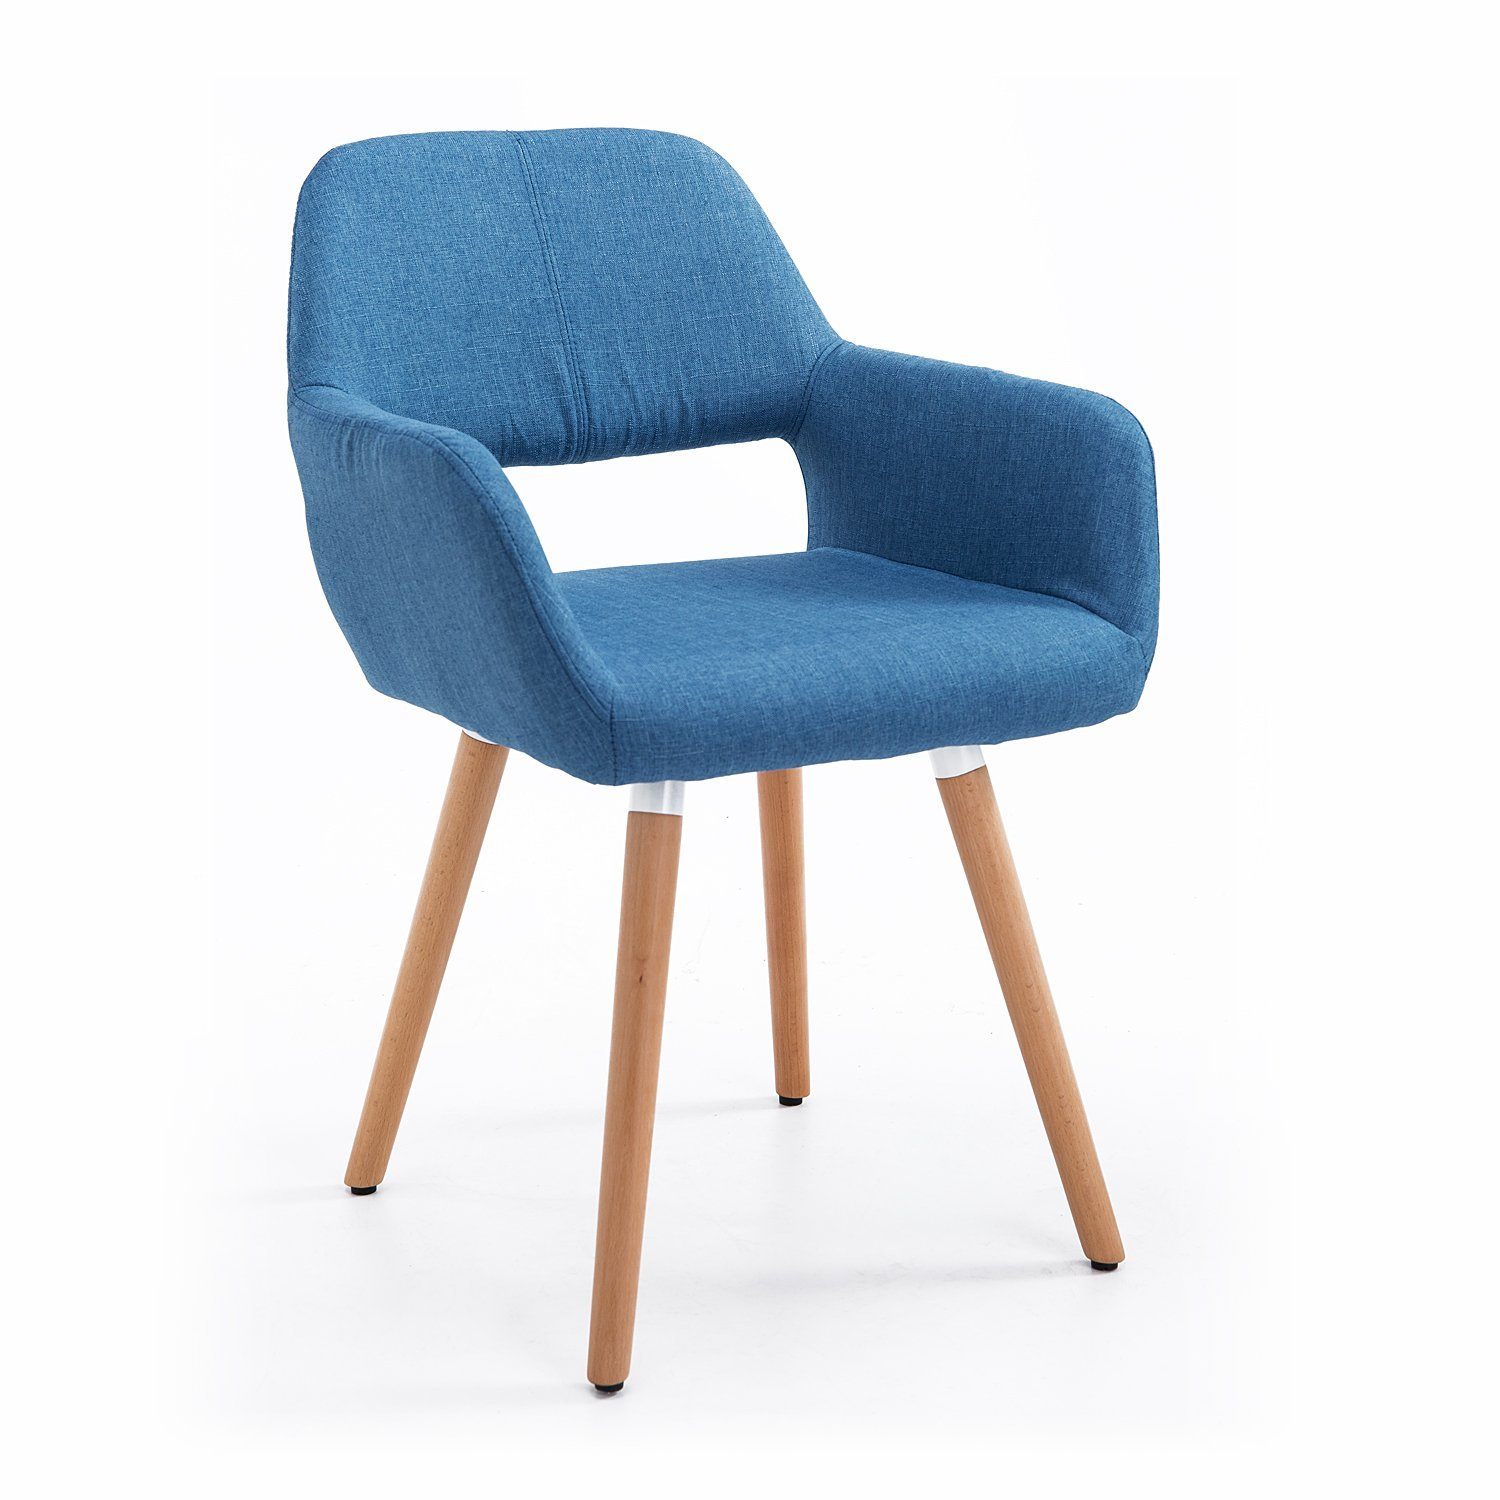 HOMCOM Chair Armchair Modern Design Padded With Soft And Fluffy Sponge Non-Slip Feet Wooden Beech 56x56x79cm